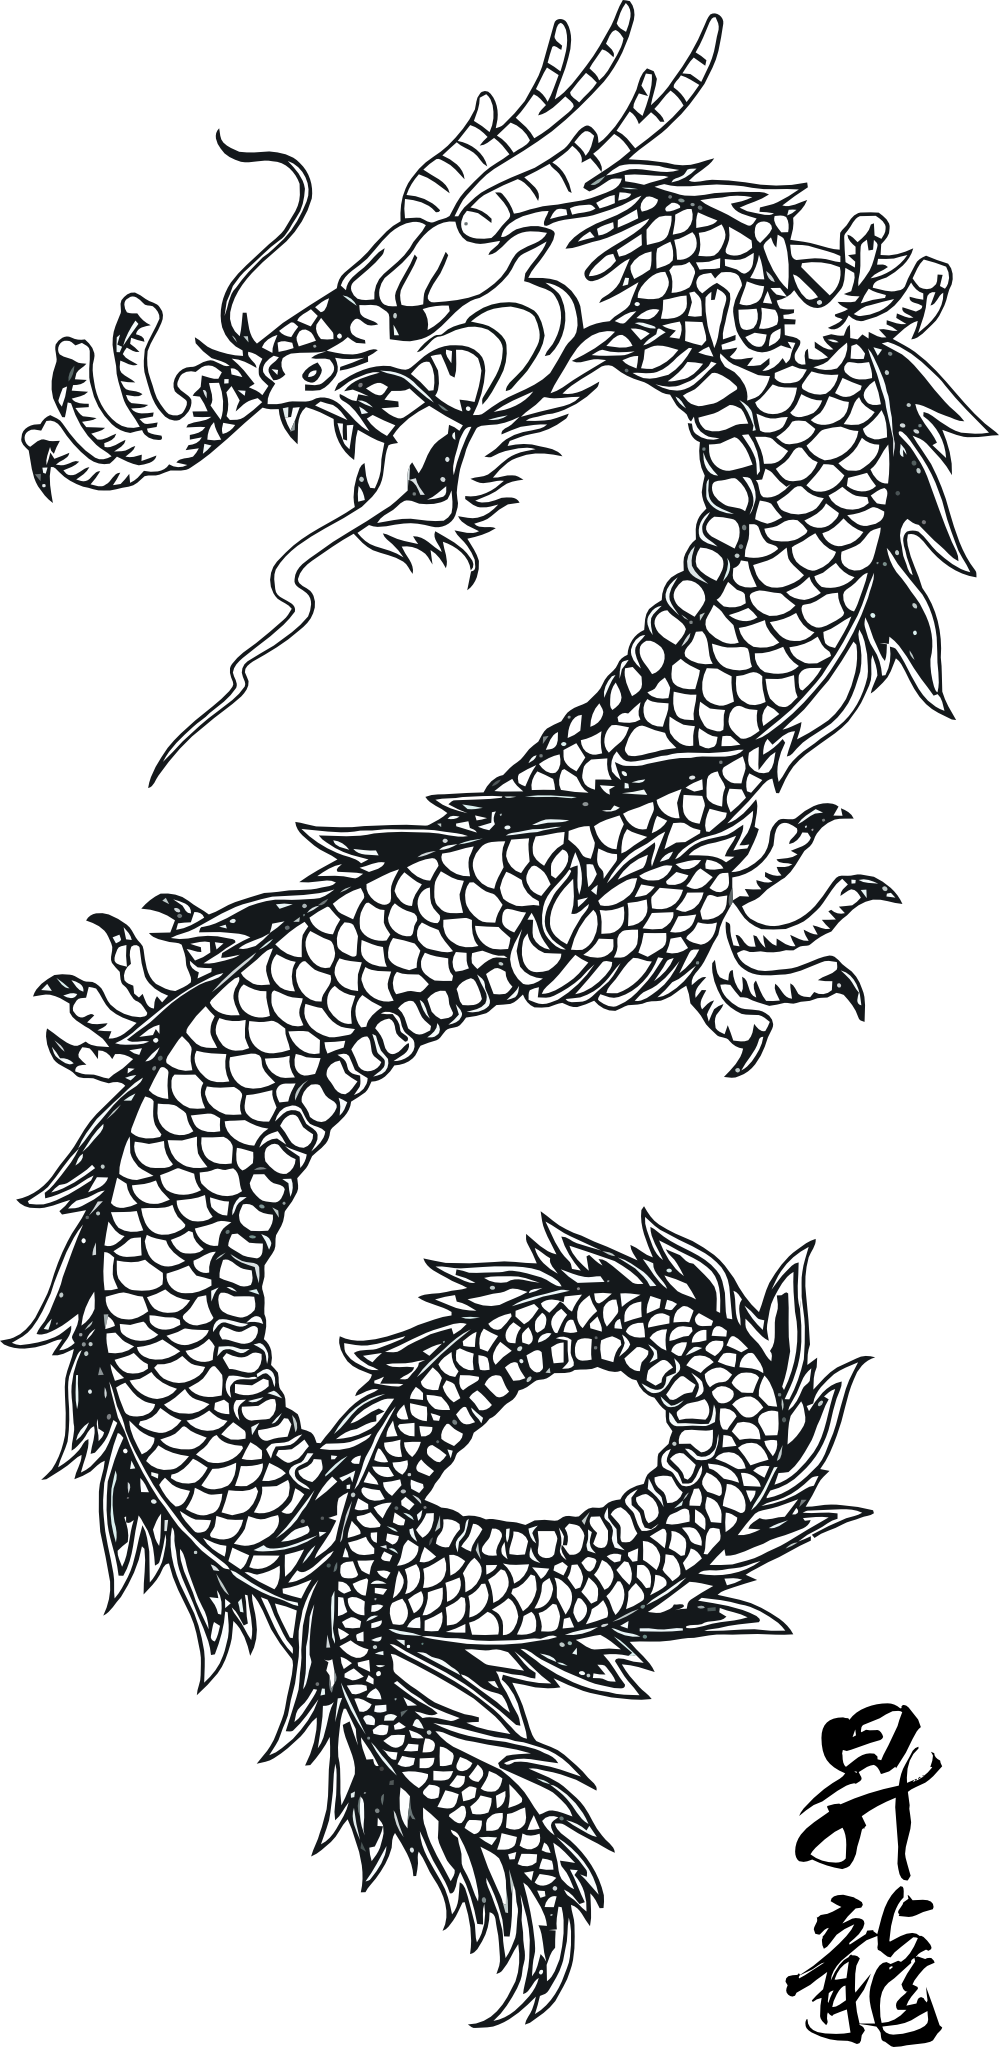 line art traditional chinese dragon scales and pattern without form